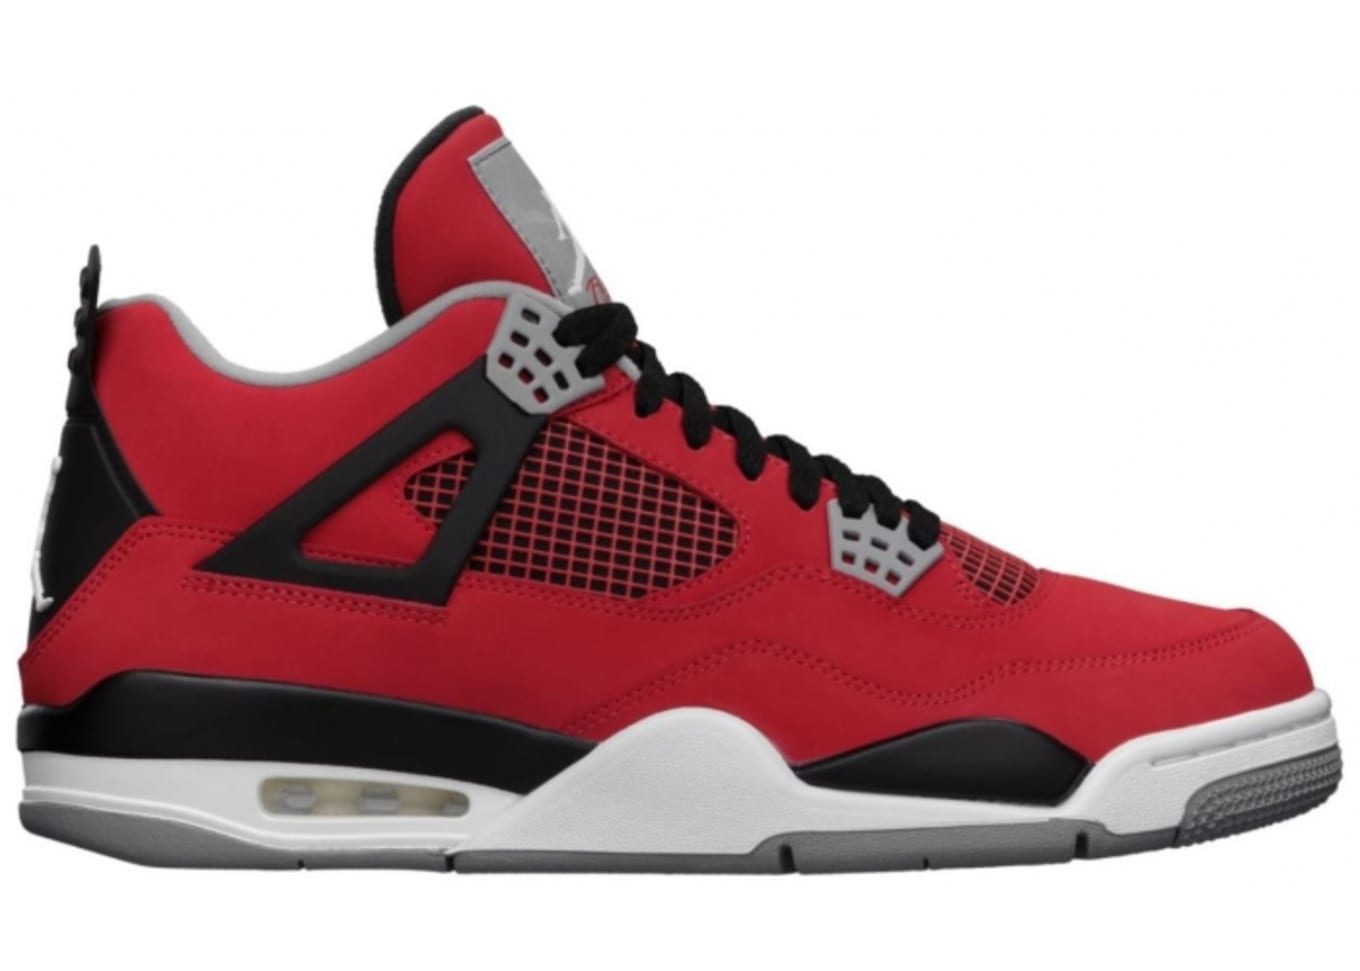 new arrival fa235 2e051 Air Jordan 4 Retro